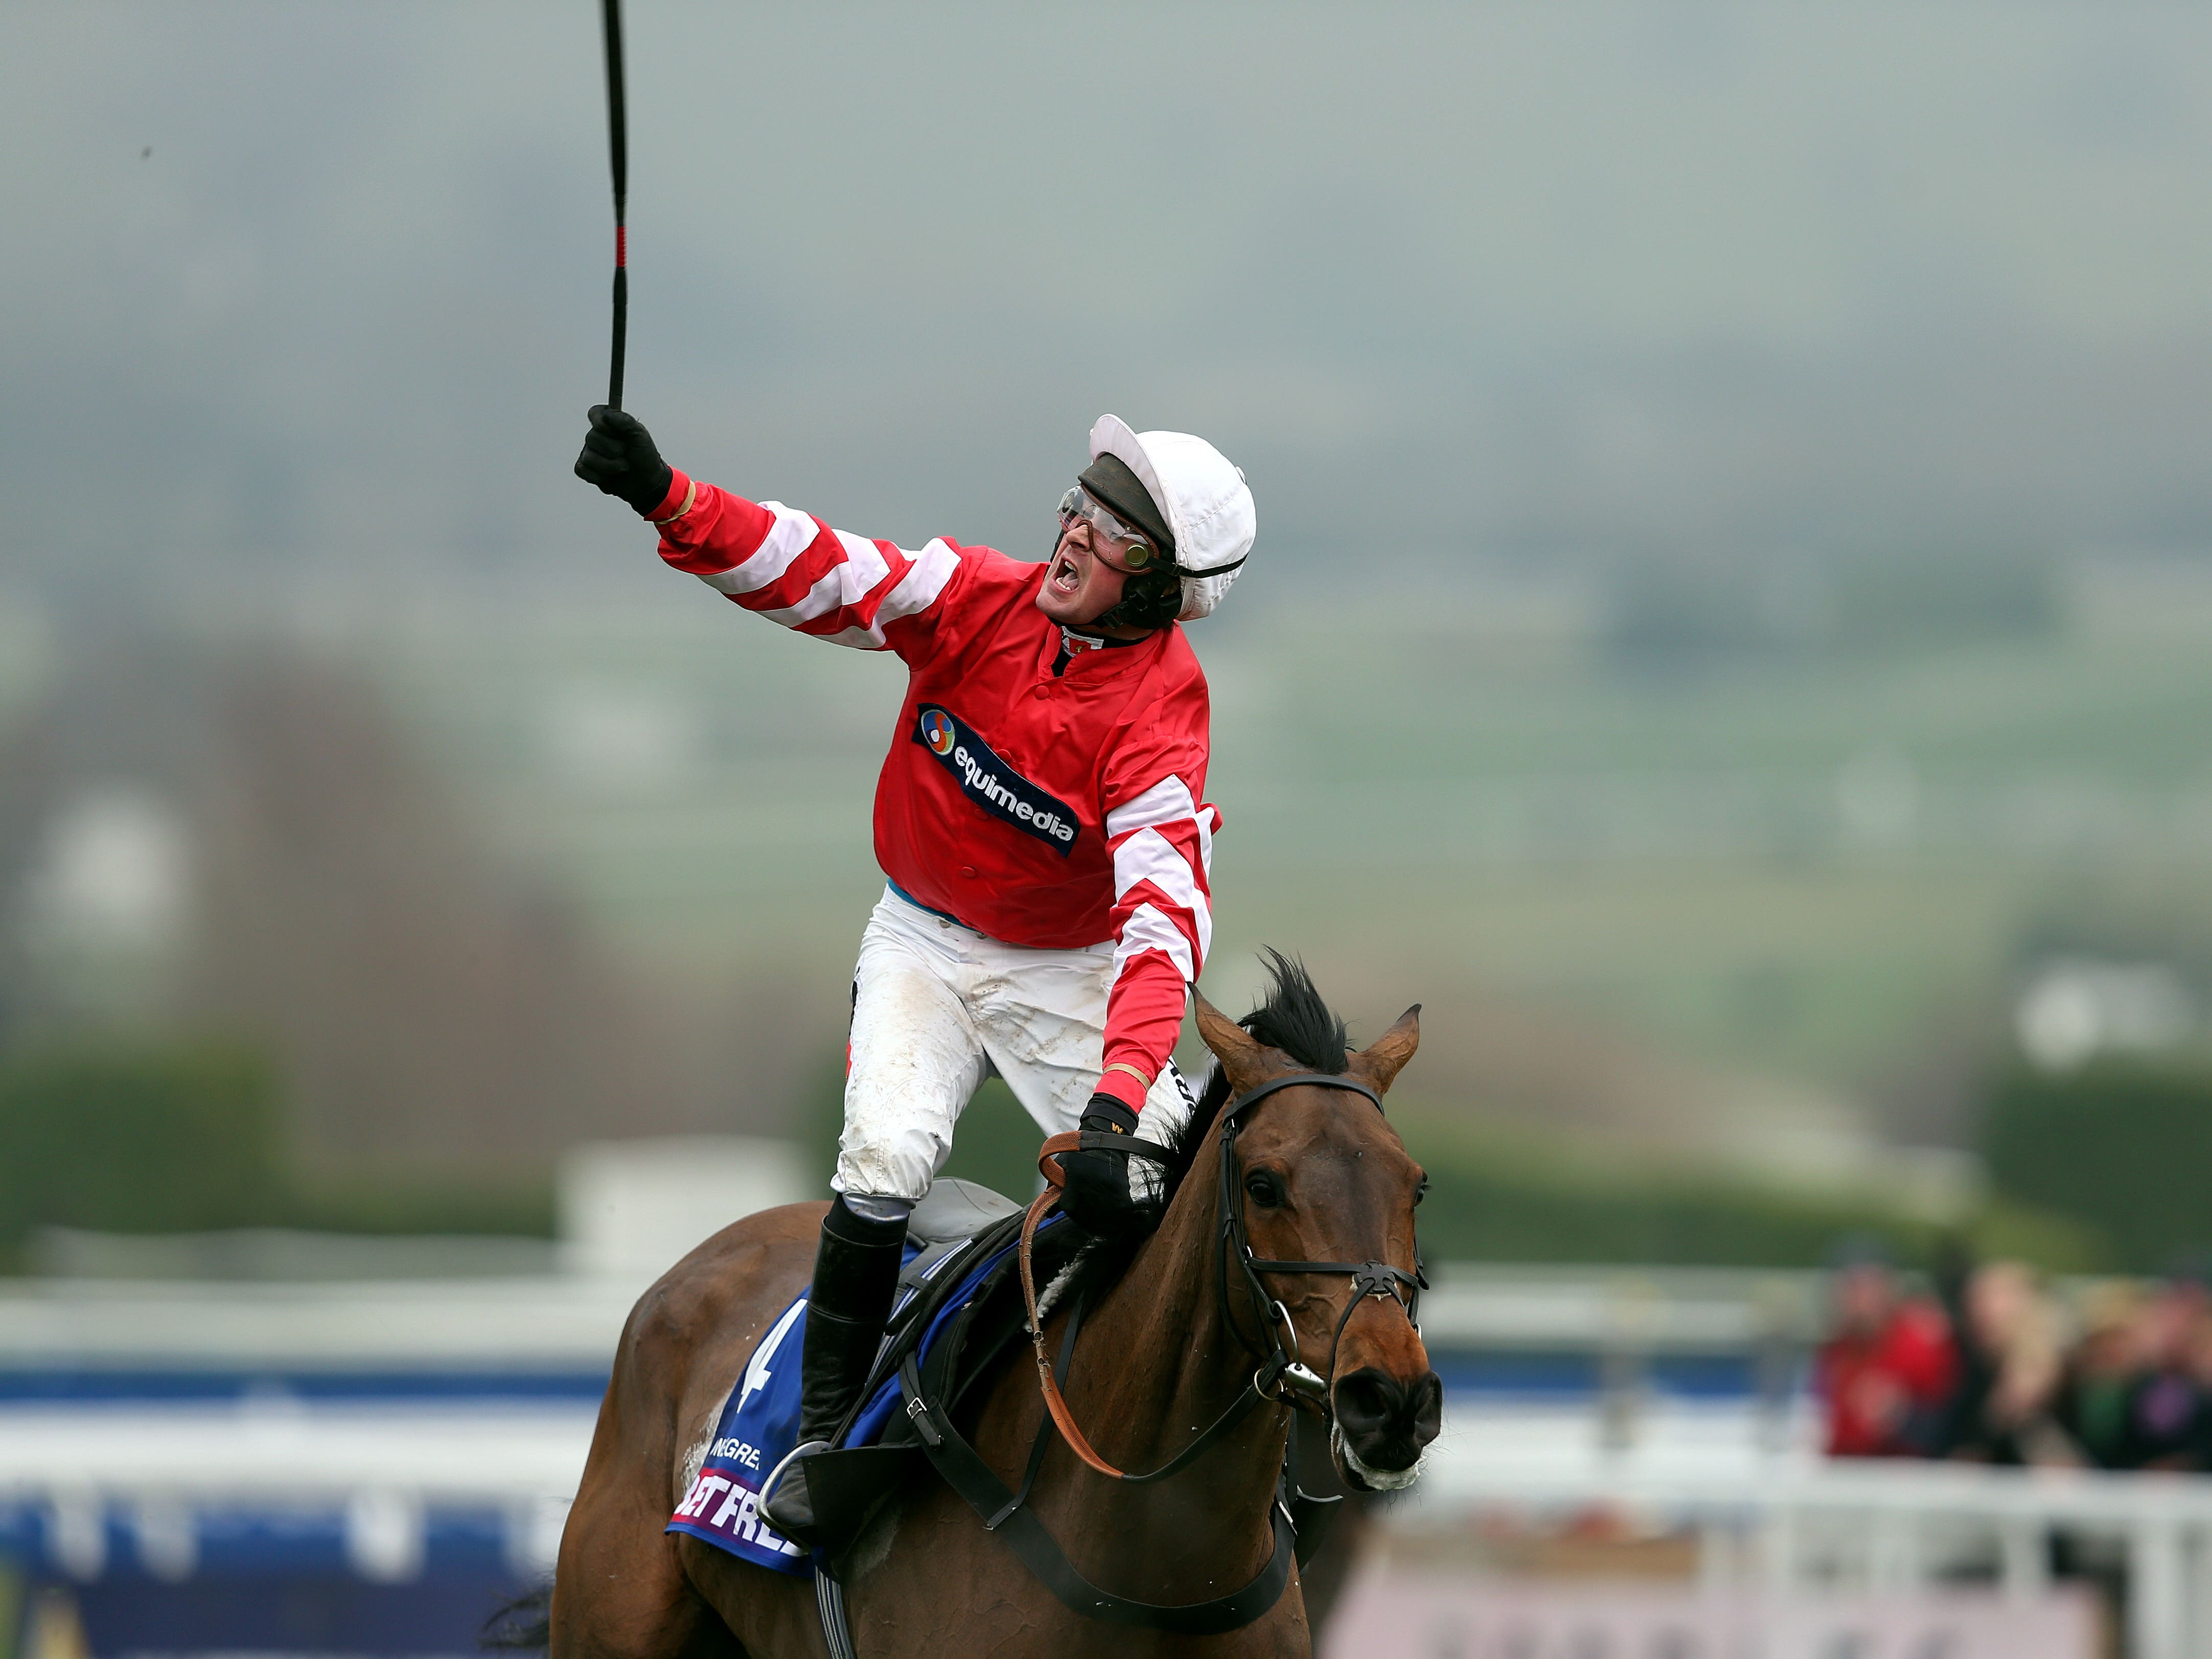 Coneygree and Nico de Boinville after winning the Cheltenham Gold Cup (David Davies/PA)